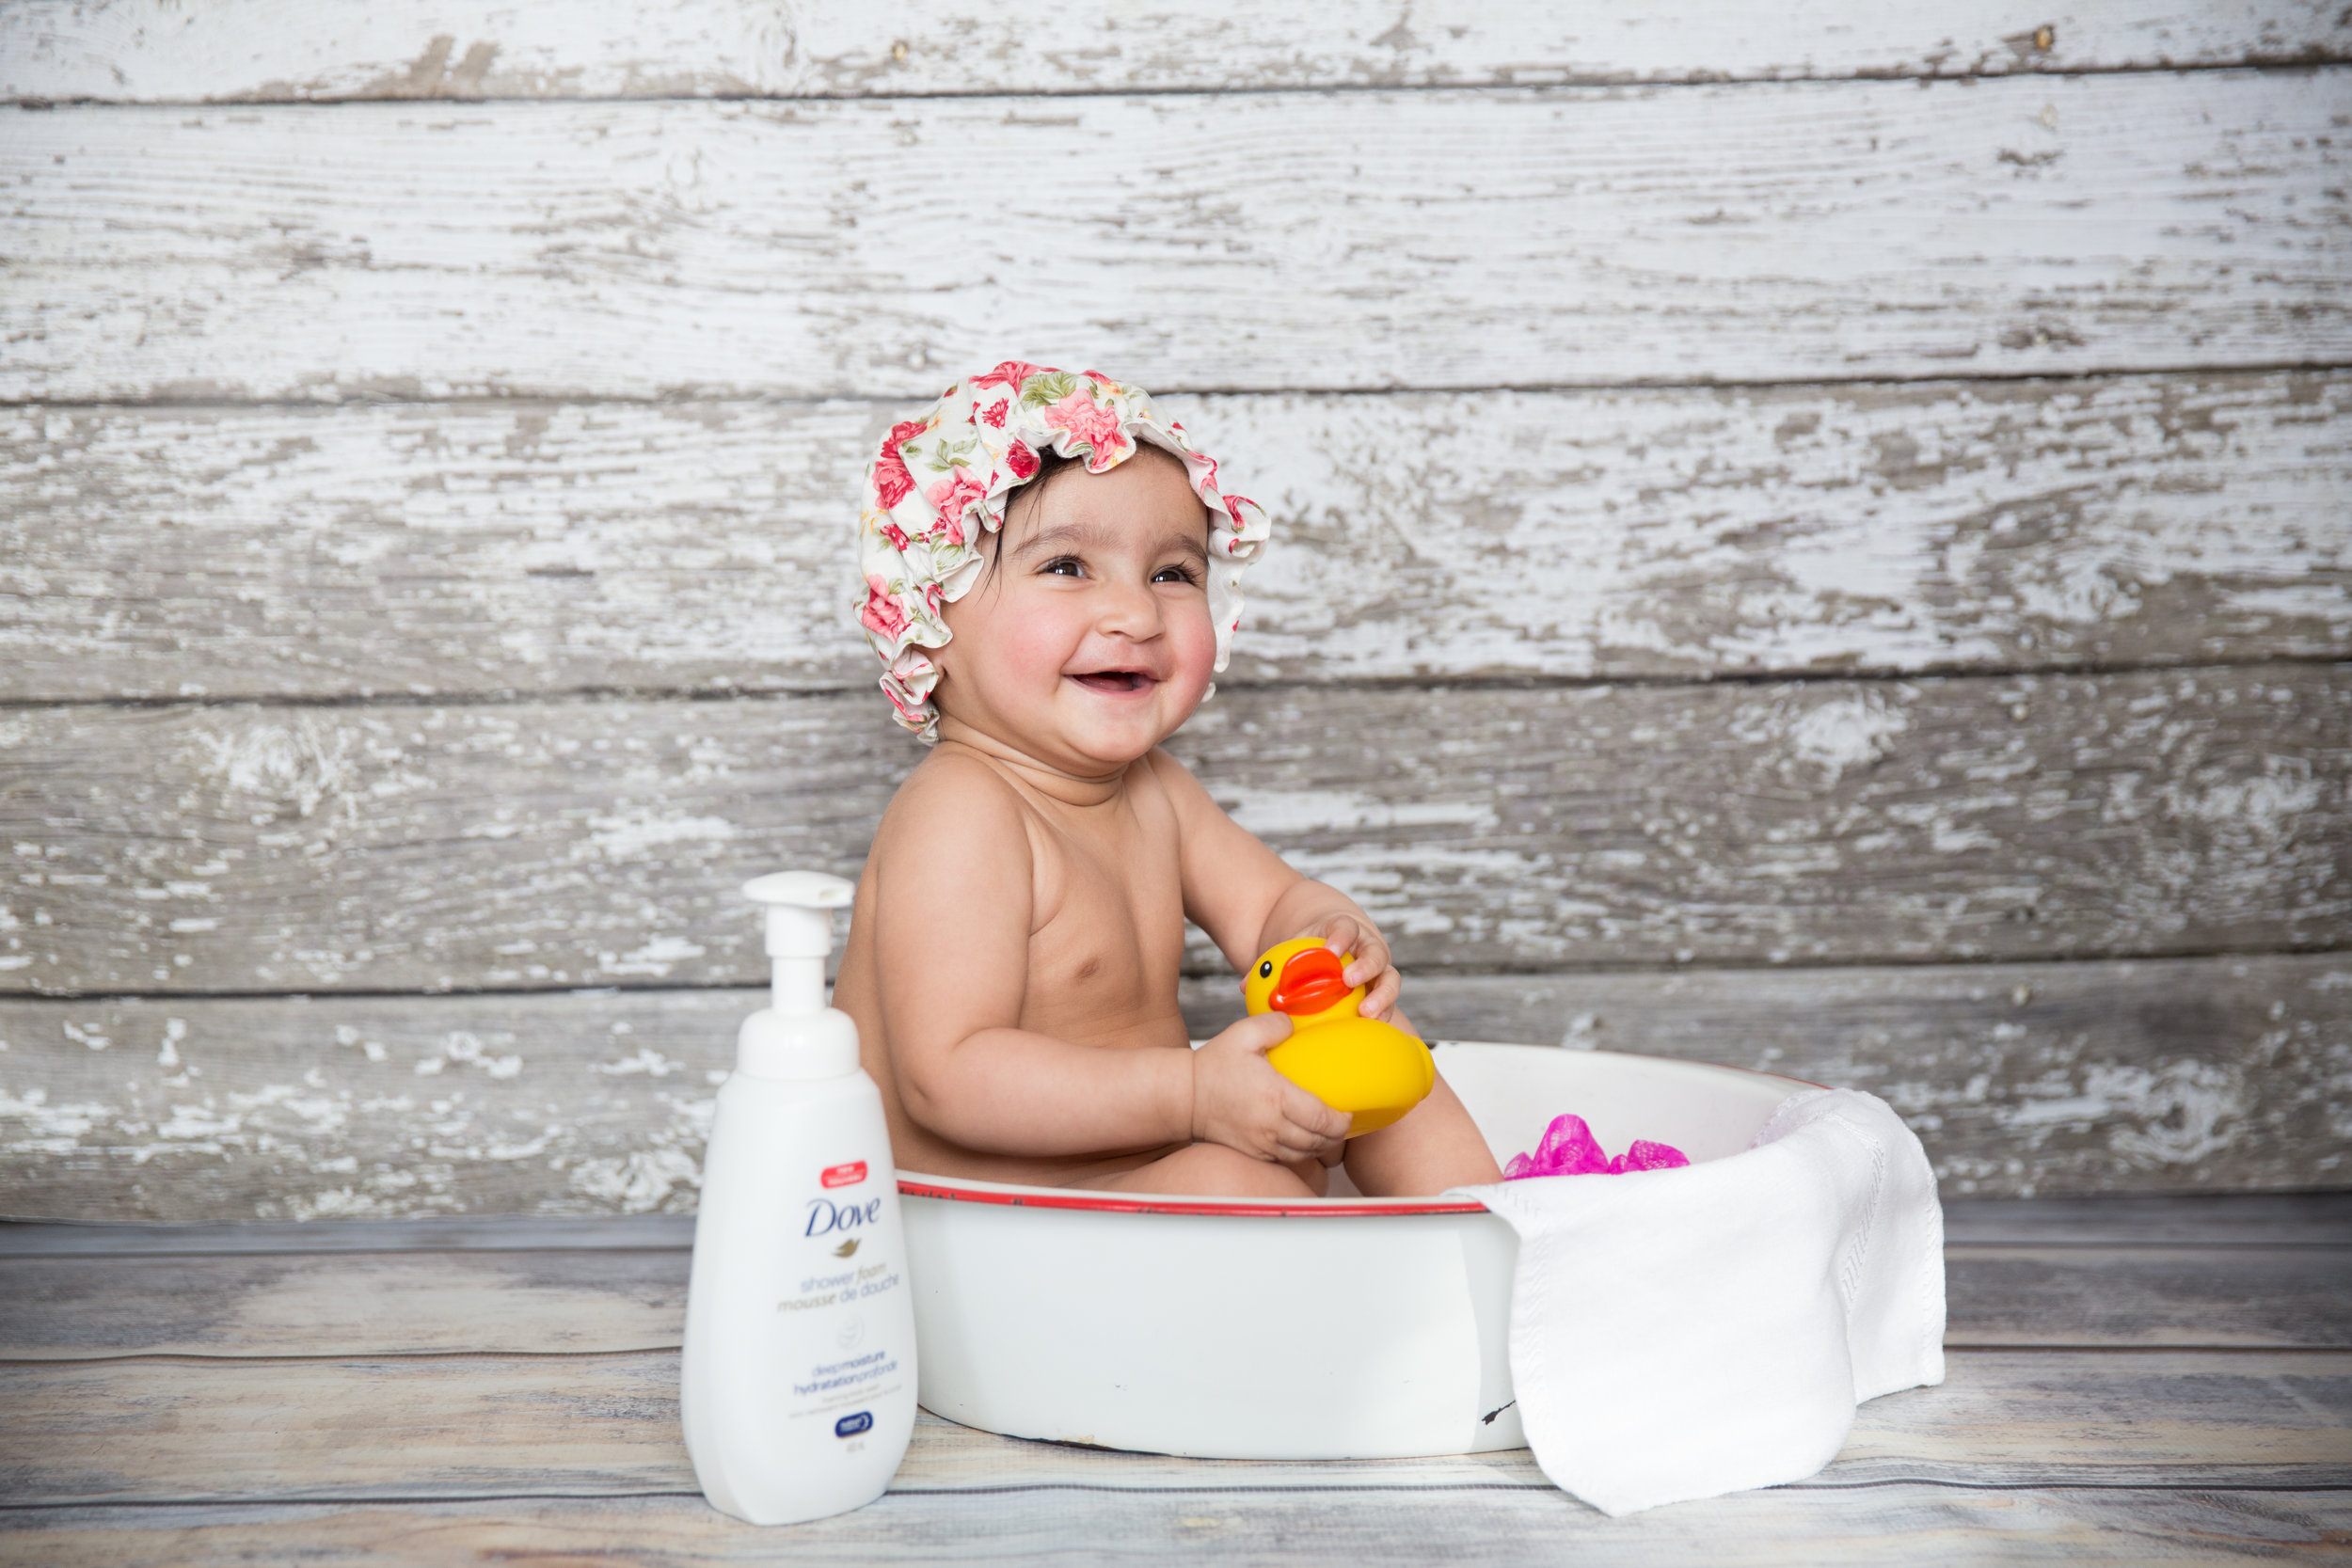 Adorable baby girl in a bathtub with a rubber duck. Calgary baby photoshoot